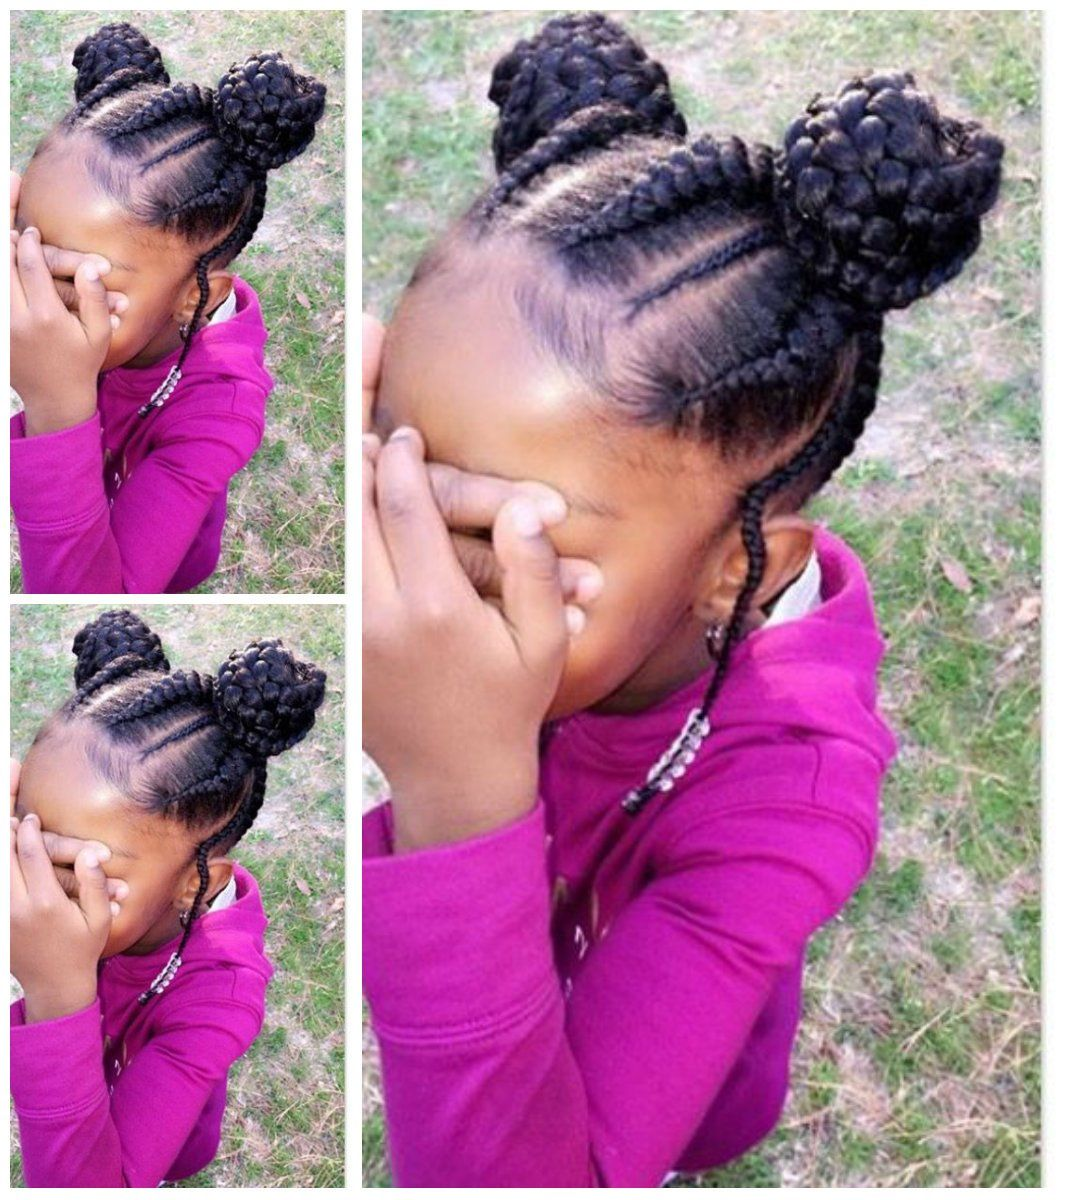 29 Braided Cornrows With Buns For Little Black Girls Afrocosmopolitan Kids Braided Hairstyles Kids Hairstyles Hair Styles